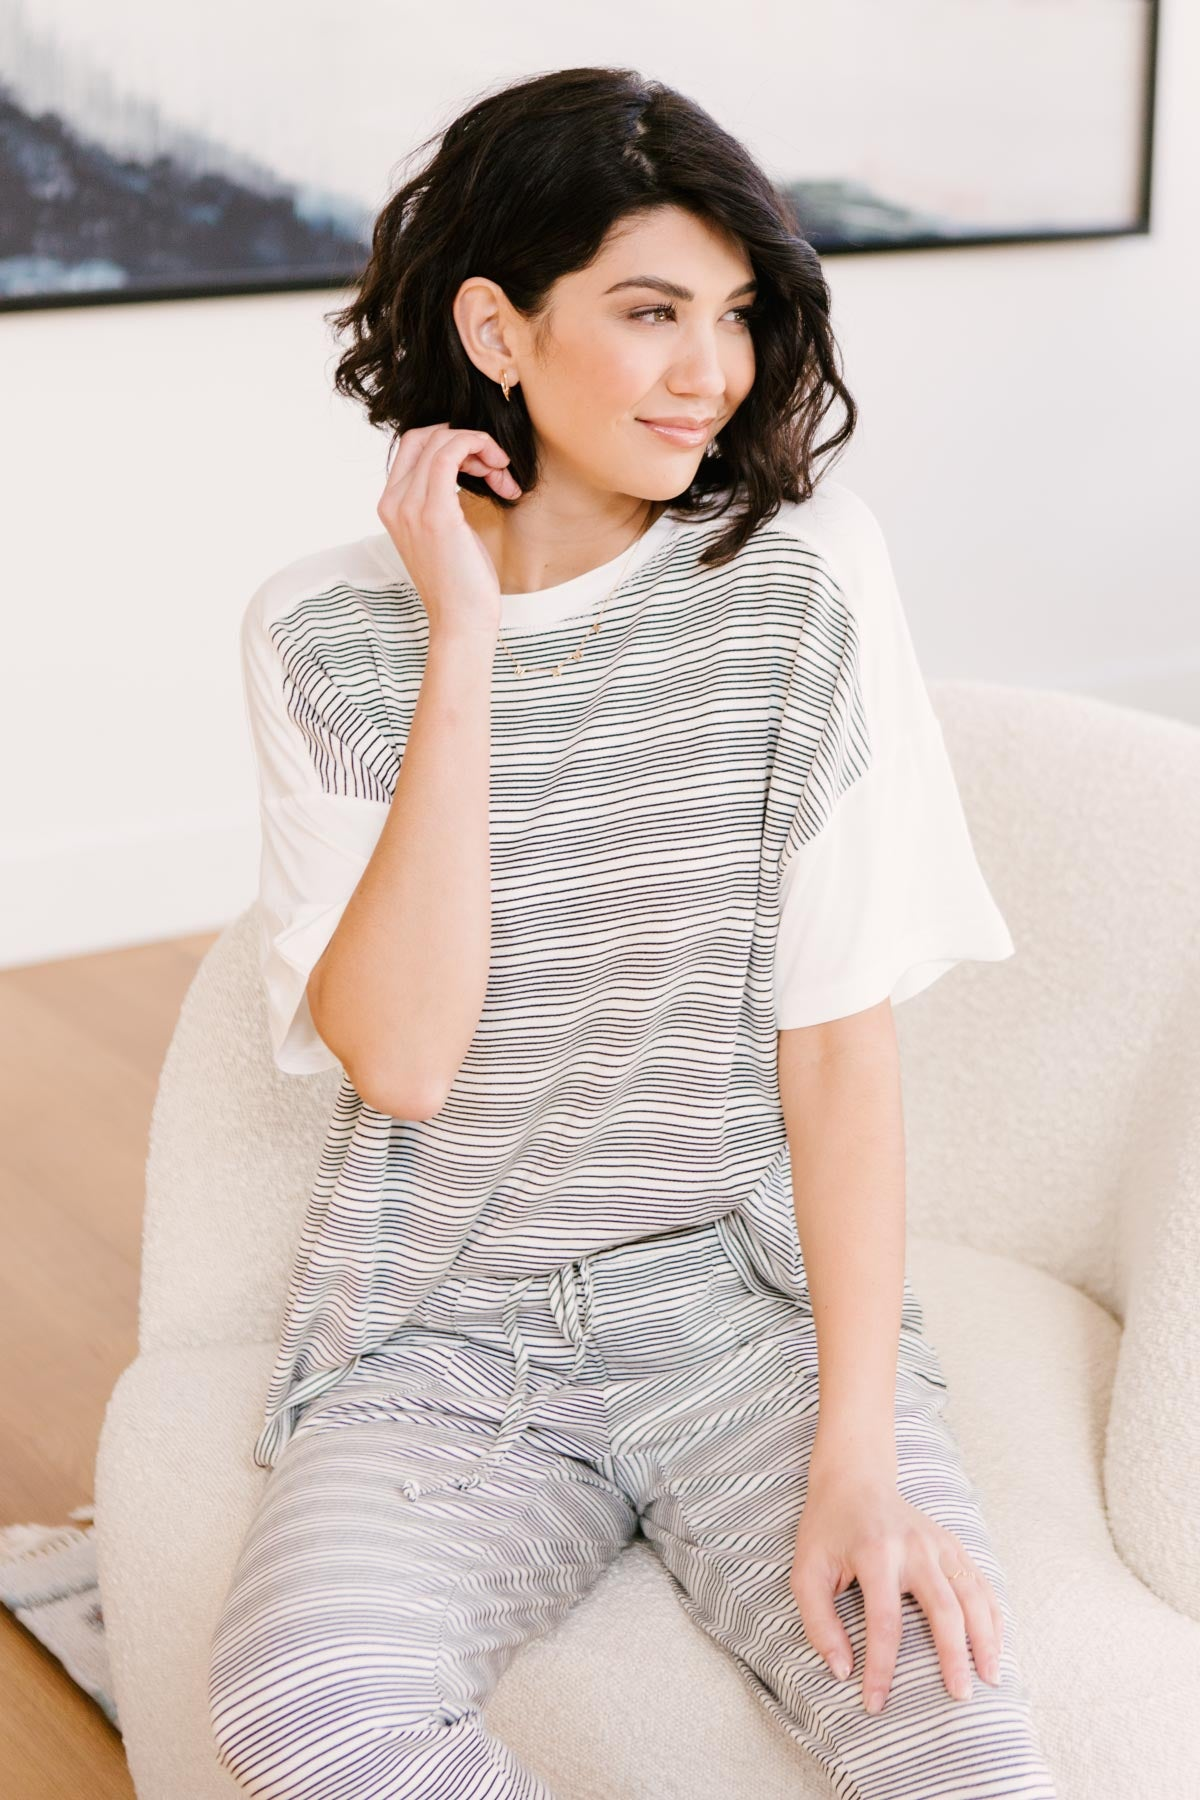 Cozy In Stripes Top-Ave Shops-Avis Lane Boutique-Justin, Texas